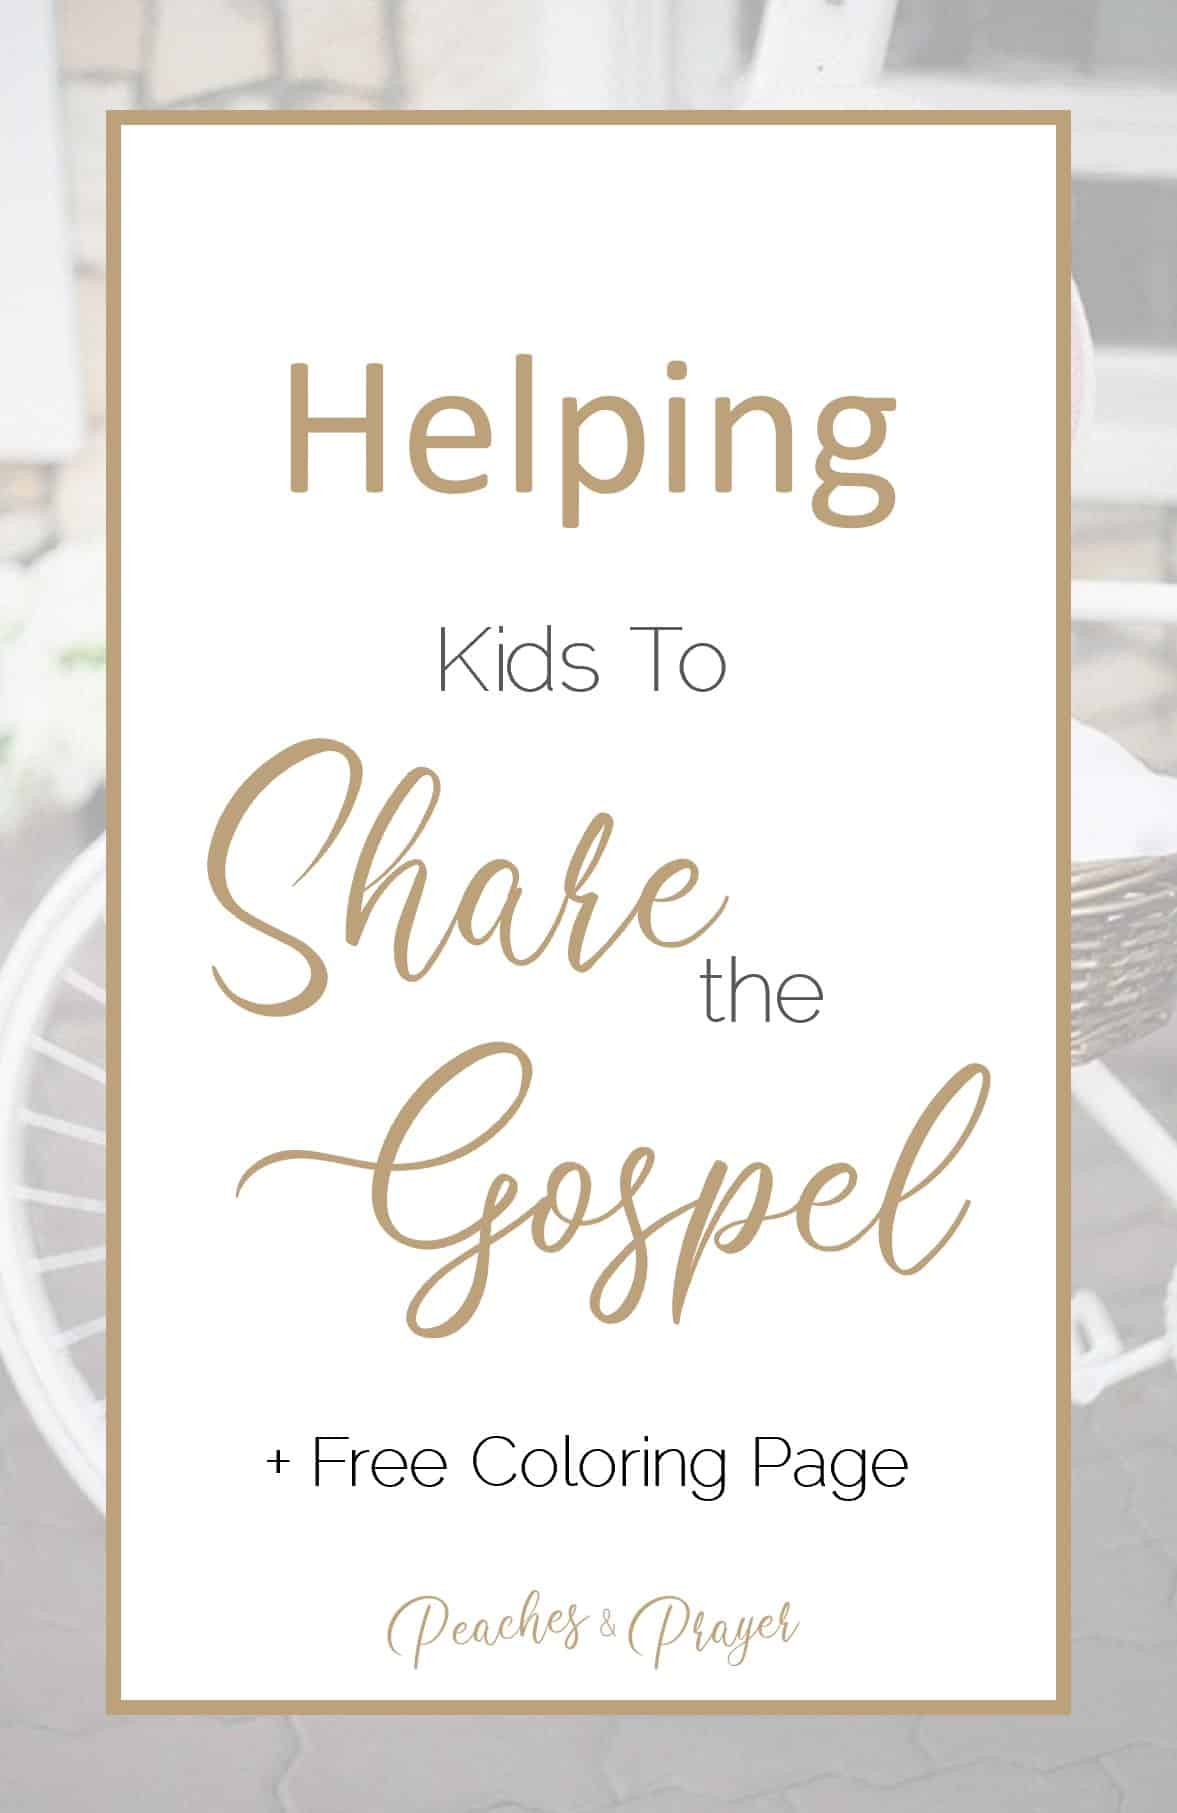 A Simple Tool for Teaching Your Kids to Share the Gospel